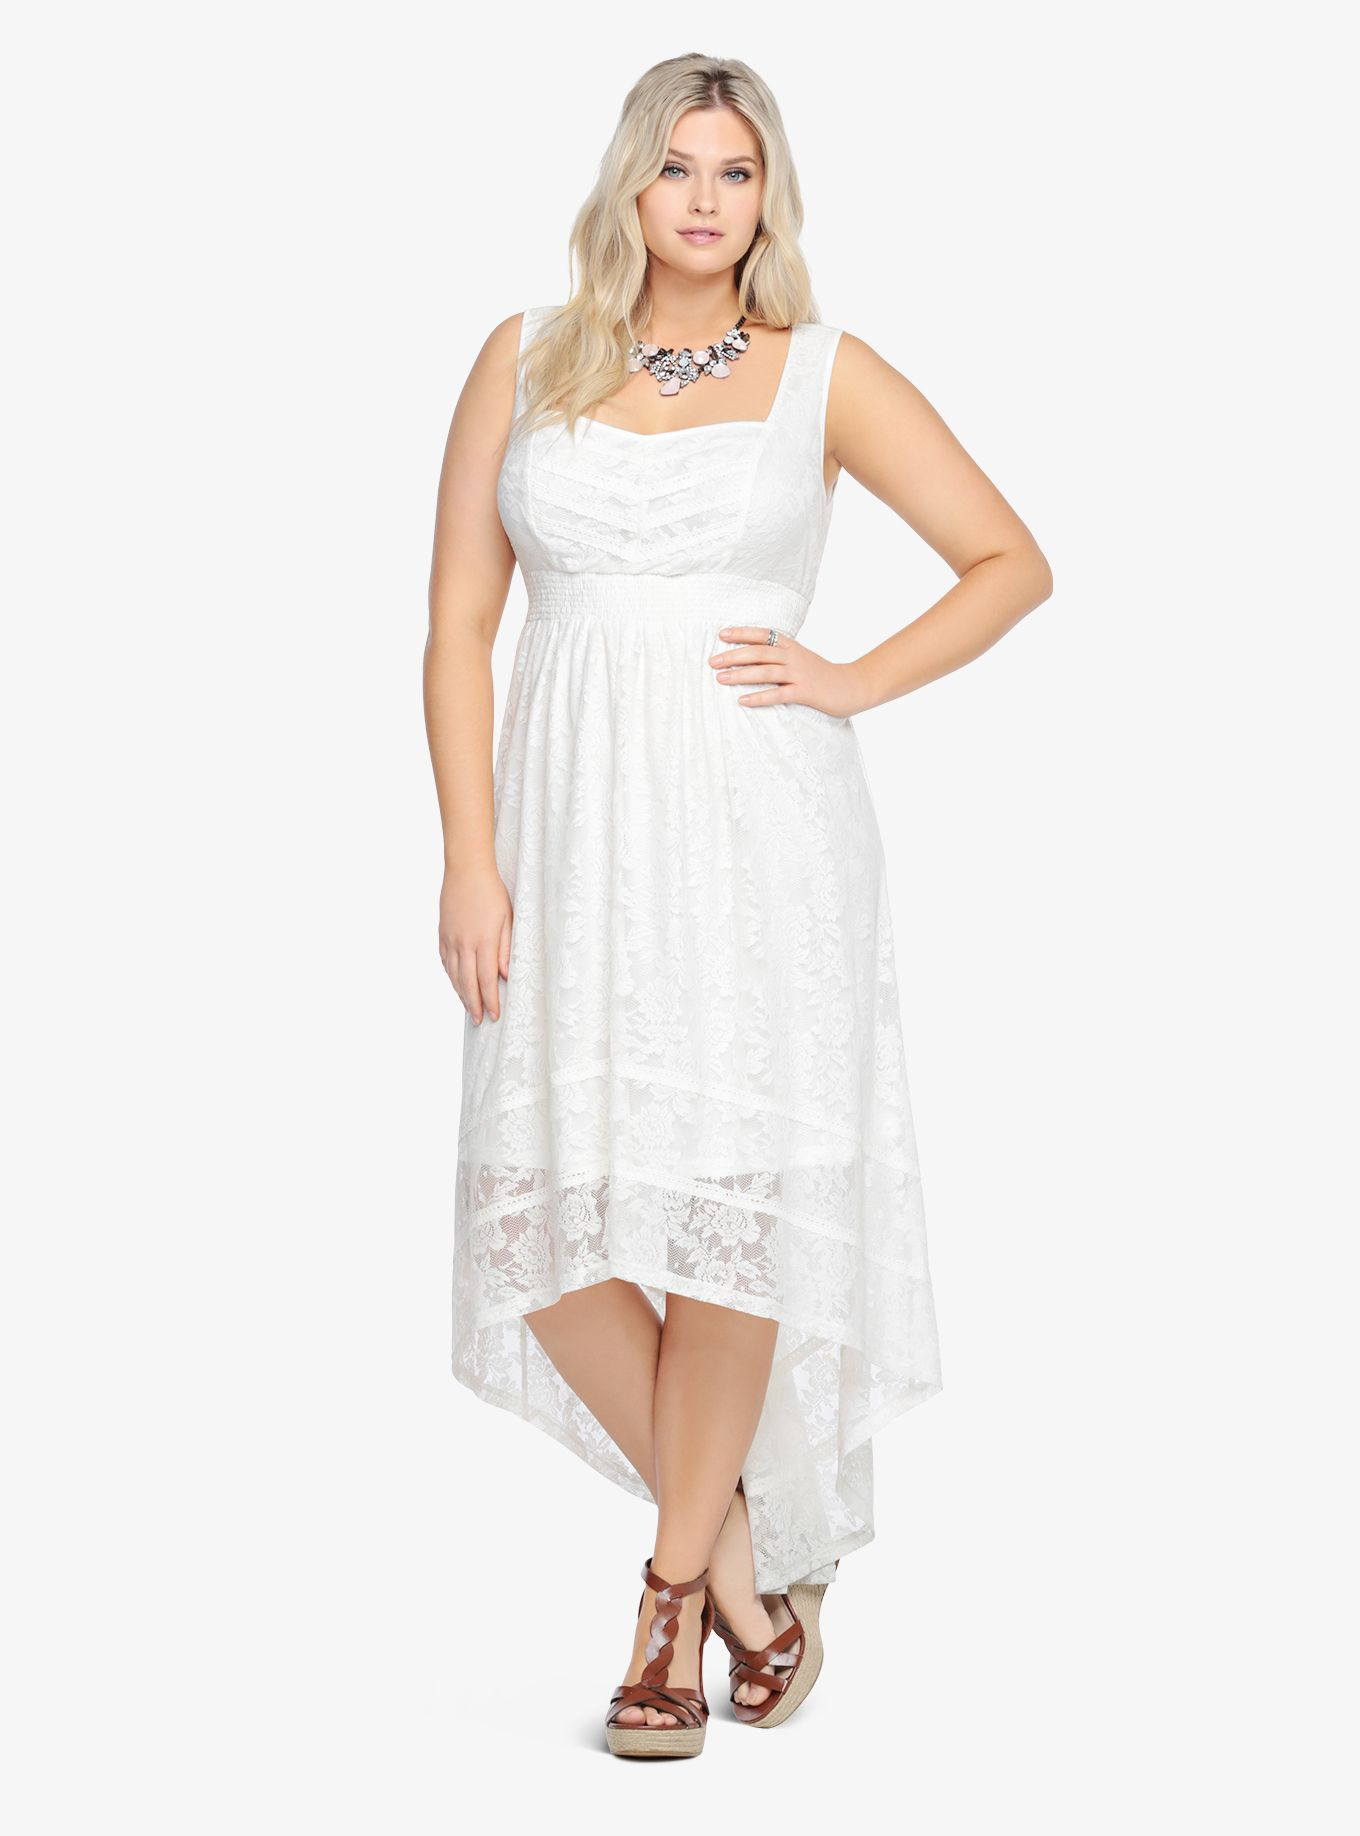 Lace Hi-Lo Dress in 2019 | Plus size dresses, Dresses, Fashion